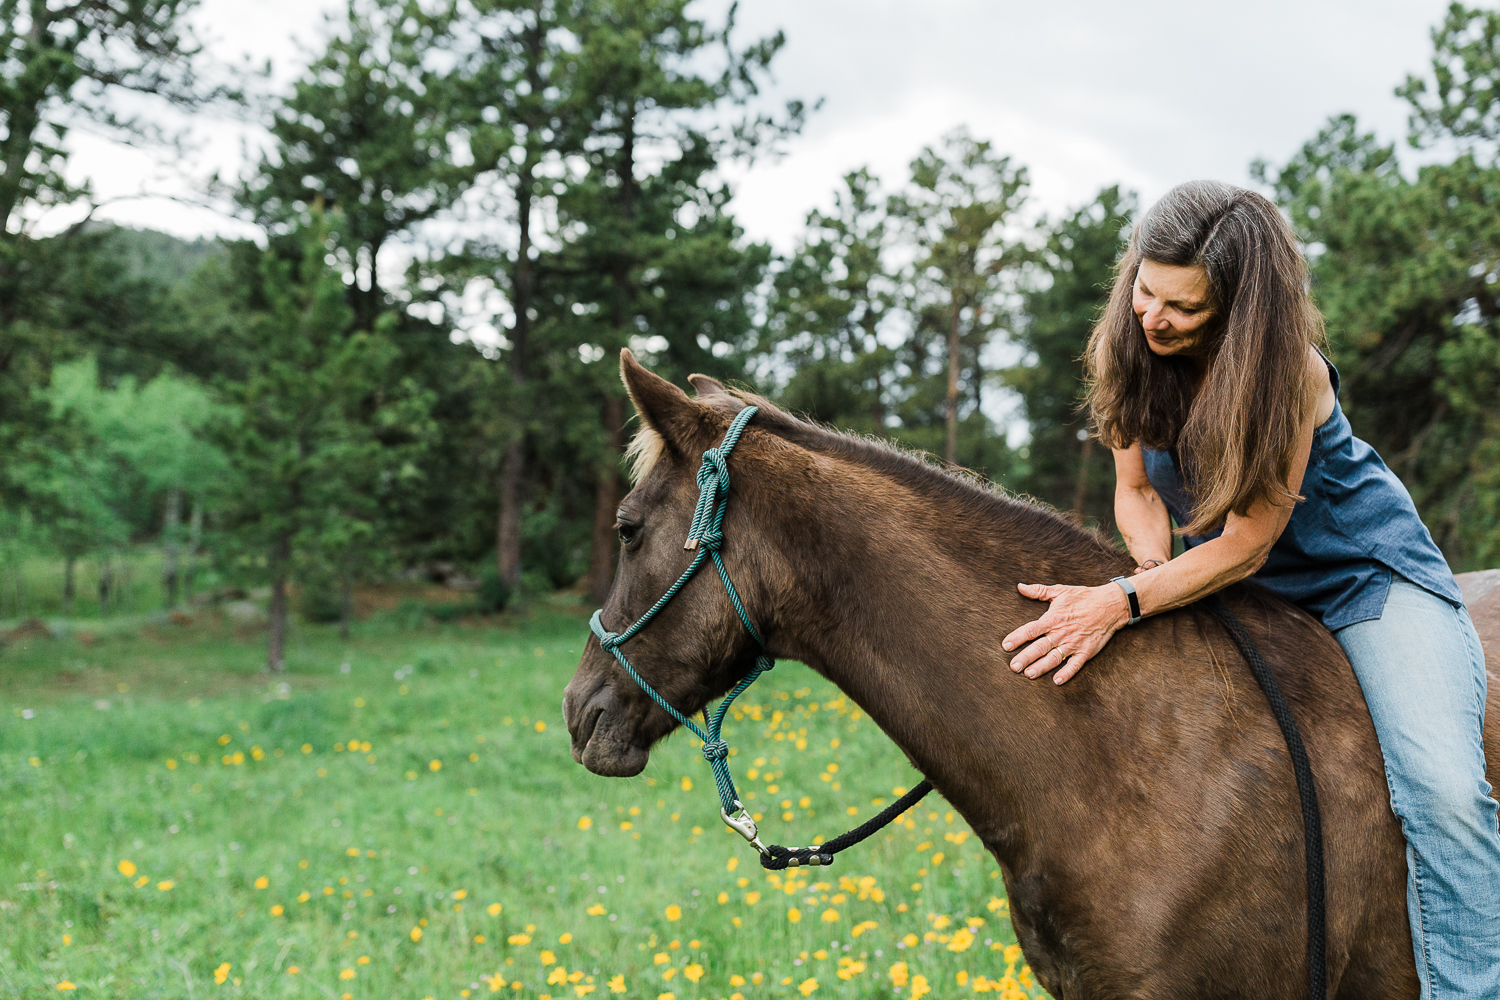 denver_equine_photography_026.jpg